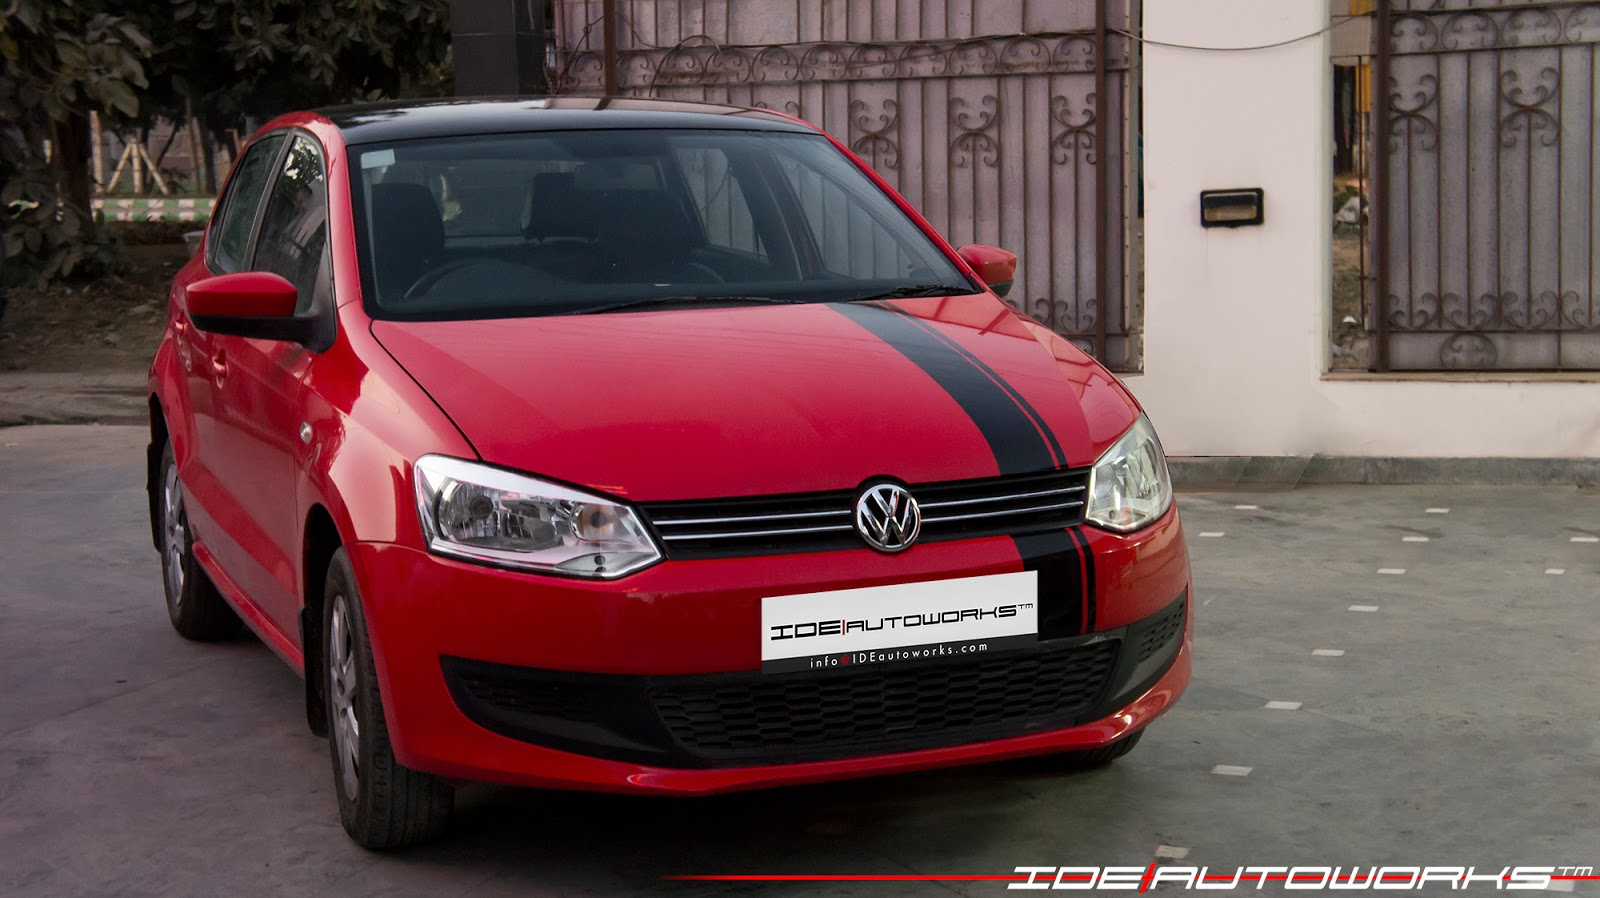 Vw Polo With Racing Stripes Ide Autoworks